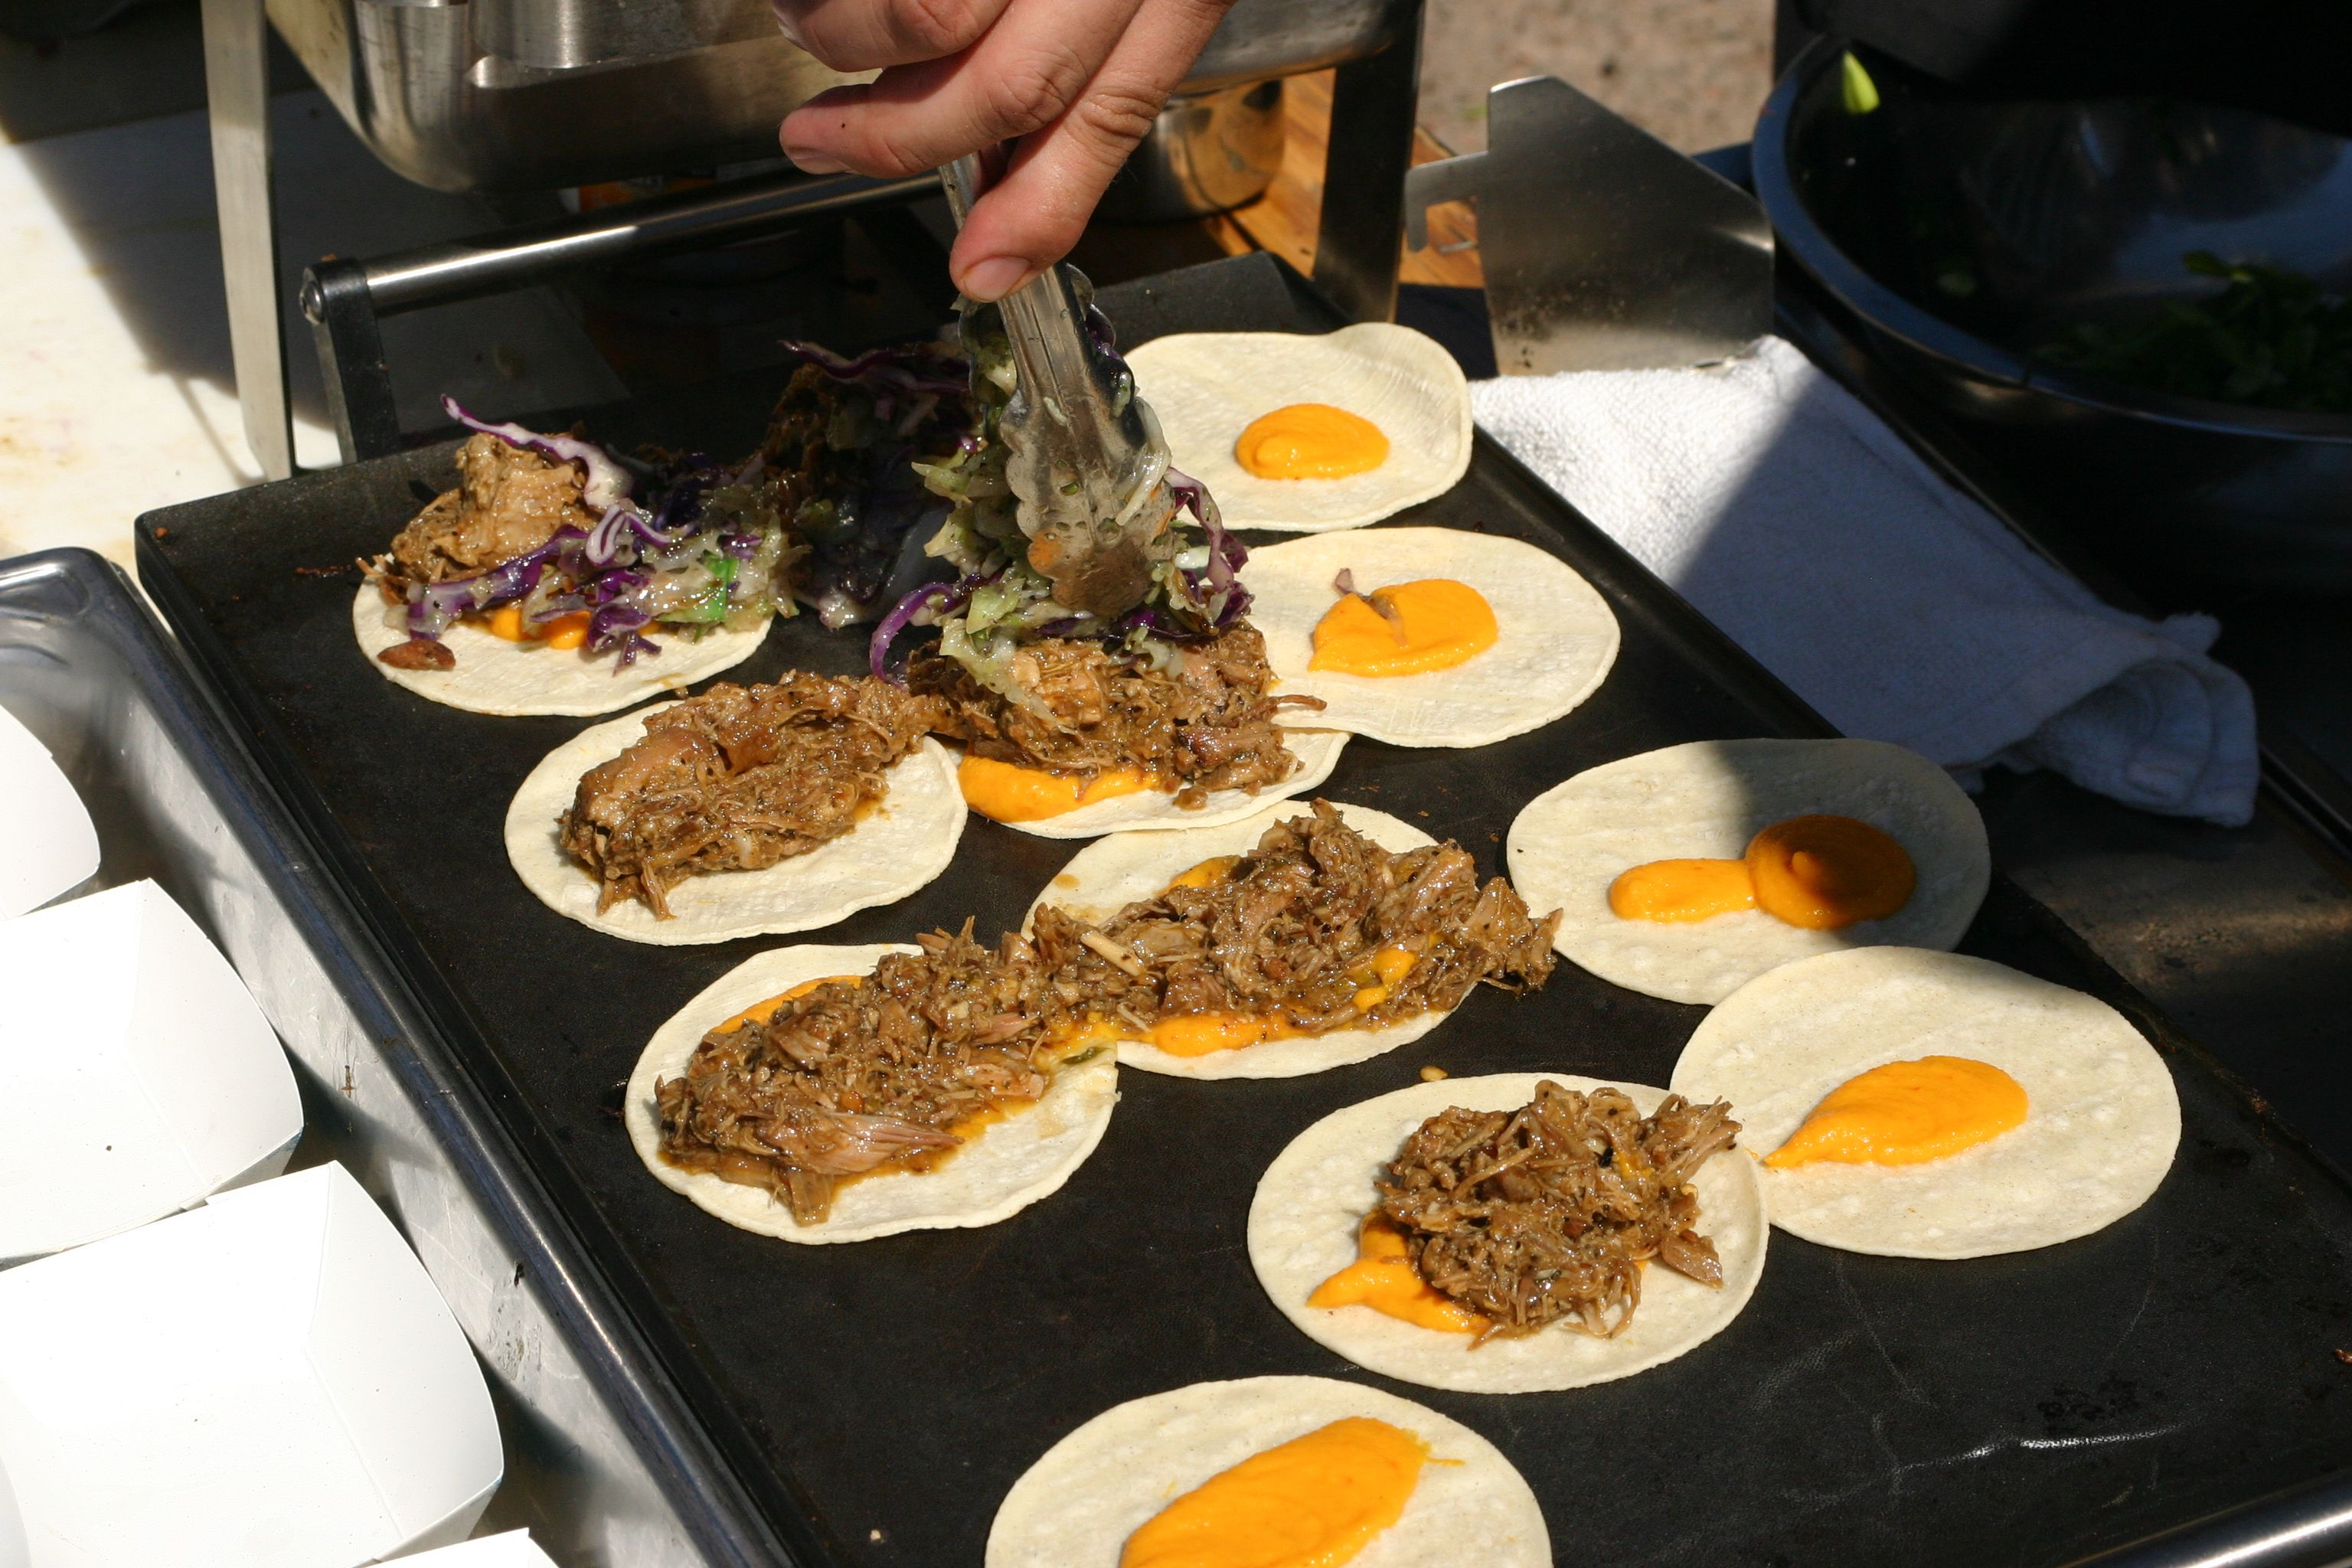 The Arizona Taco Festival Will Serve More Than 200,000 Tacos This Weekend